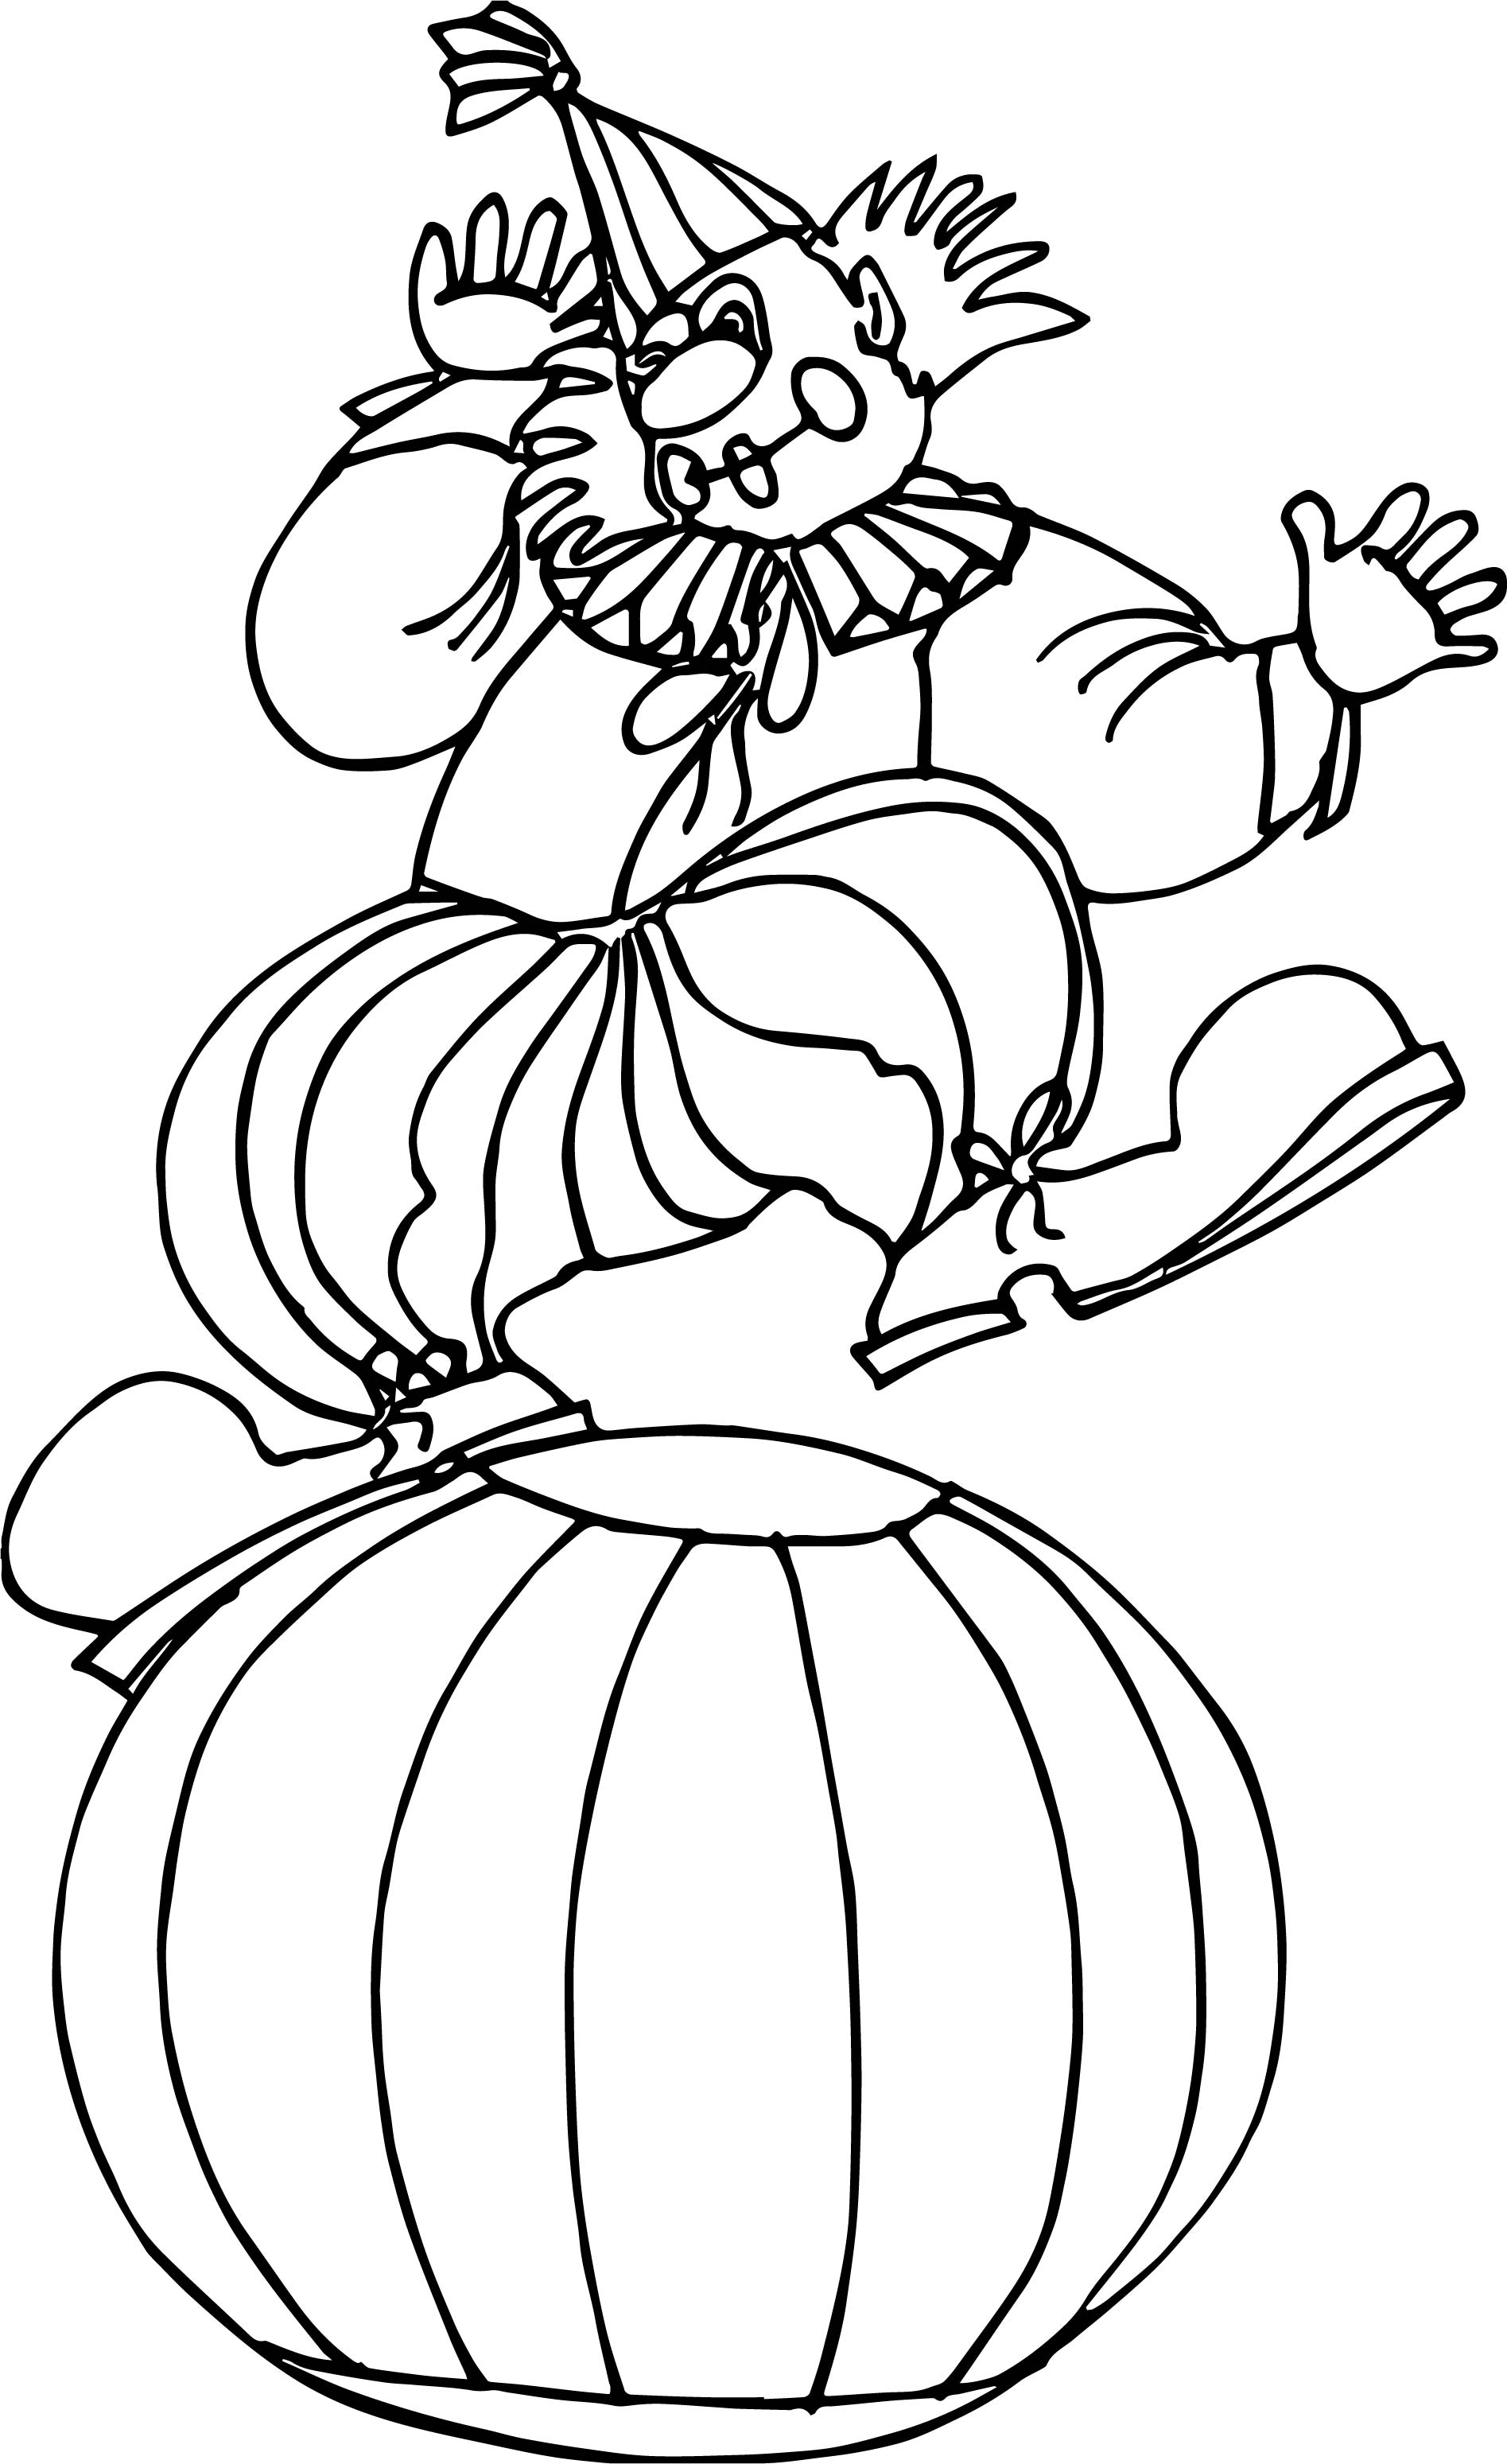 Clown On Ball Coloring Page | Wecoloringpage